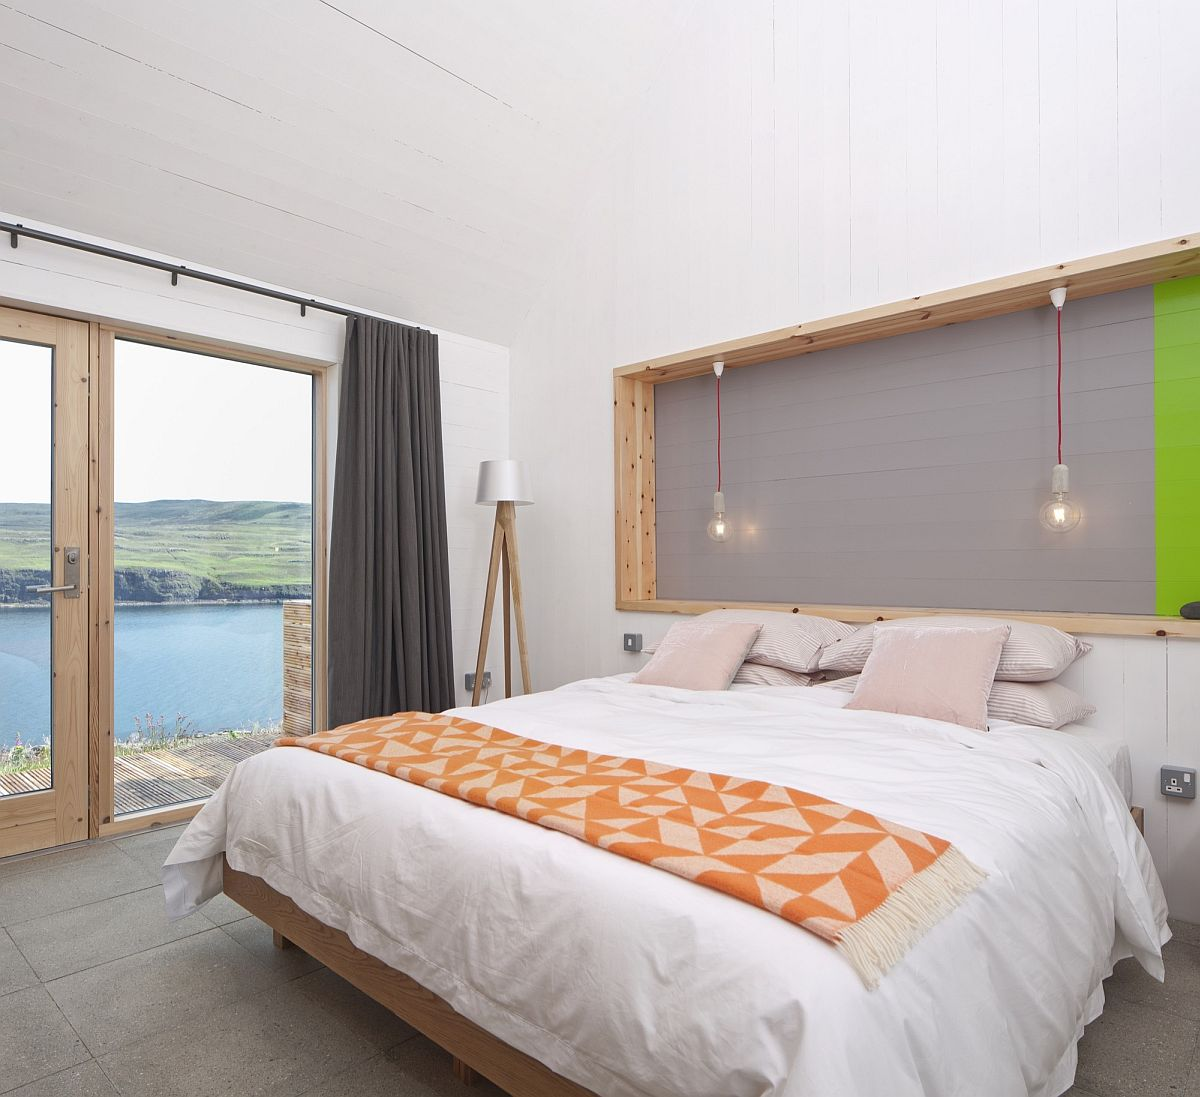 Modern bedroom with nature views and pops of orange and green